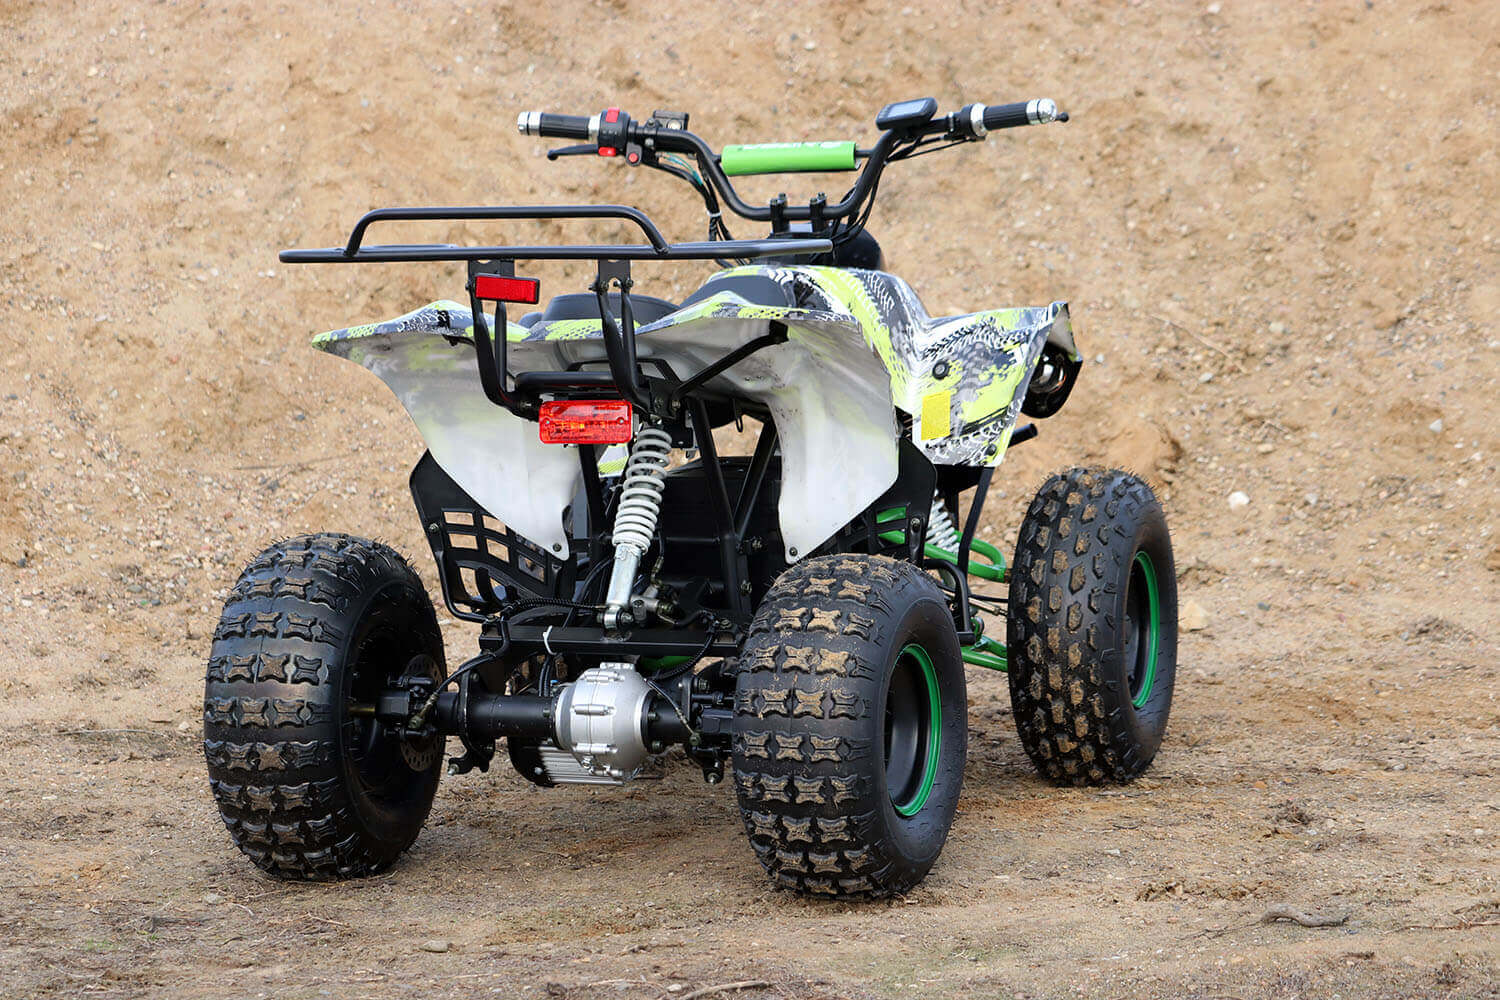 Warrior S8 1000W 48V Brushless XXL Large Kids Electric Quad Bike from Nitro Motors, Mini Bikes Store